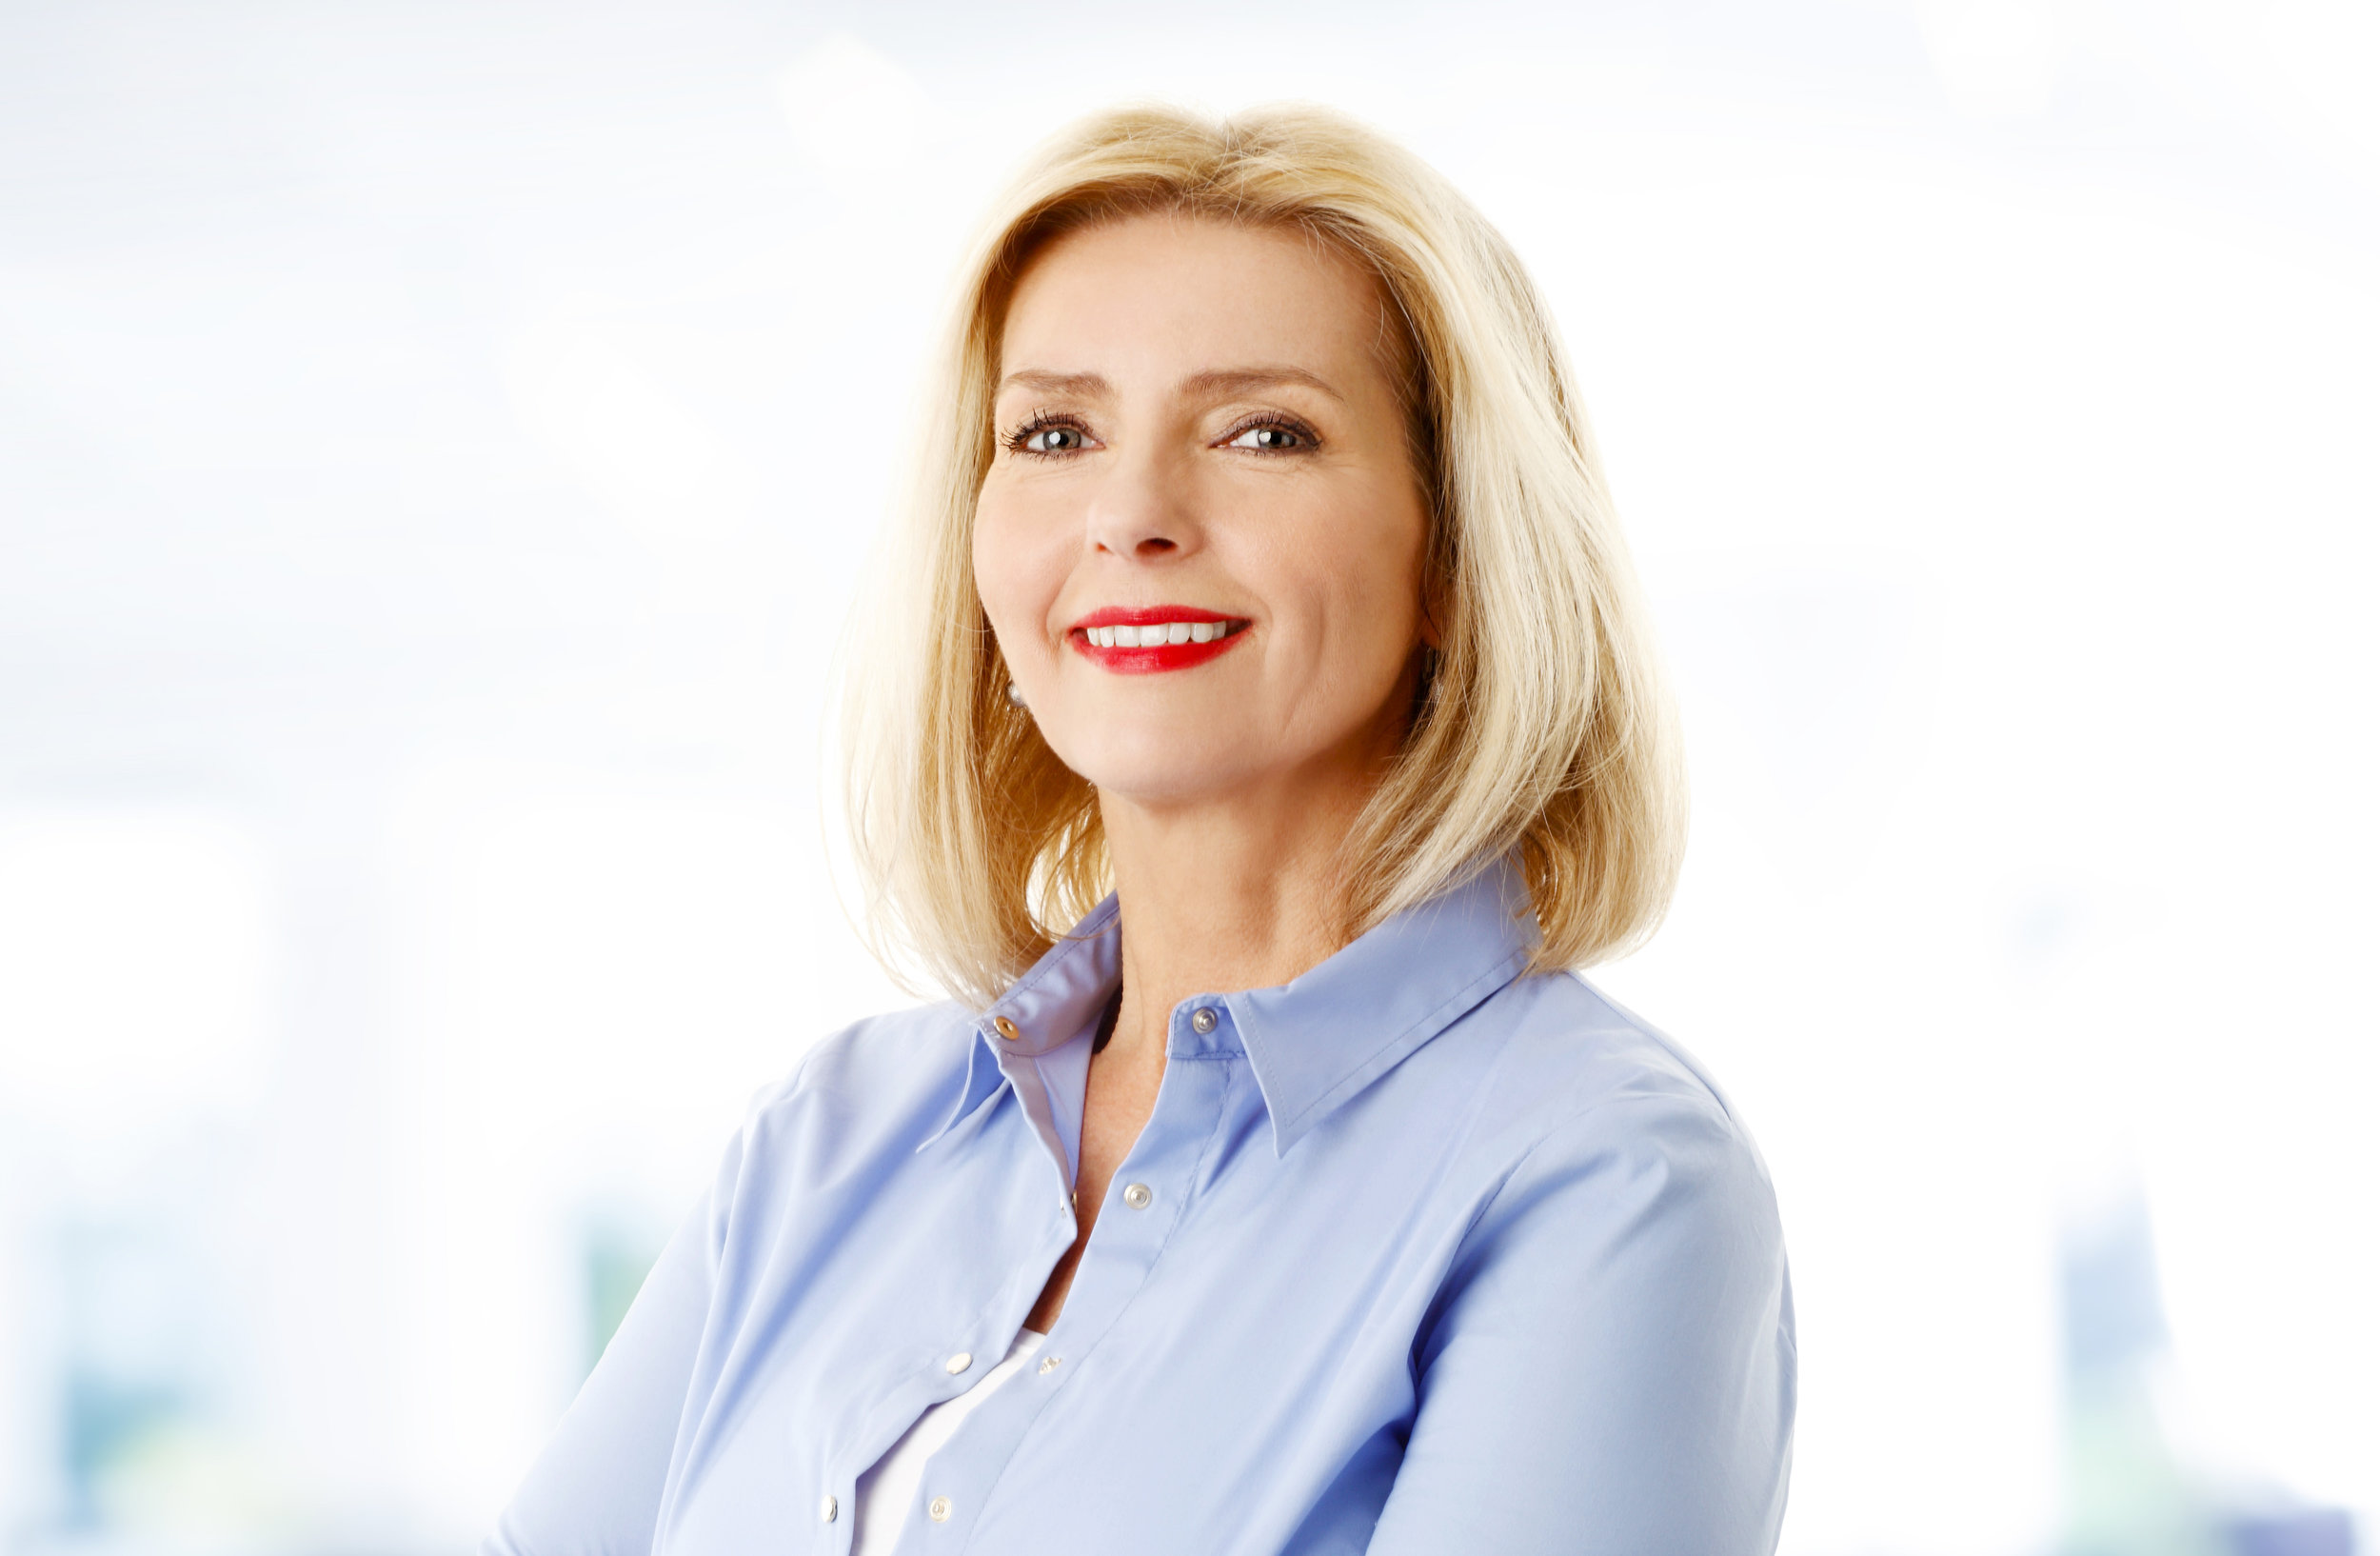 Botox is still regarded by most professionals as the highest standard of elective cosmetic injections.